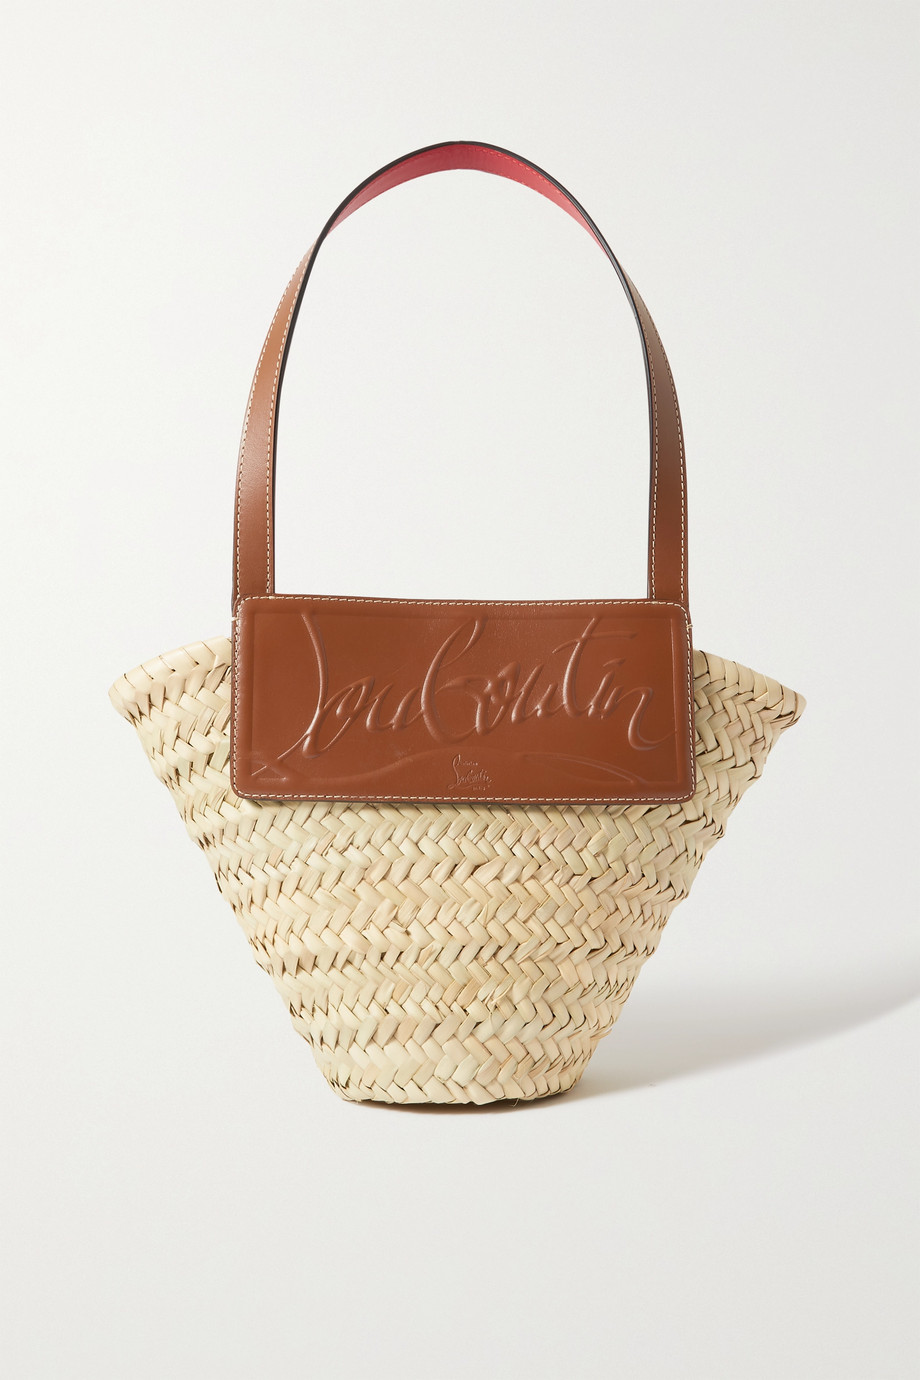 Christian Louboutin Loubishore small woven straw and embossed leather tote